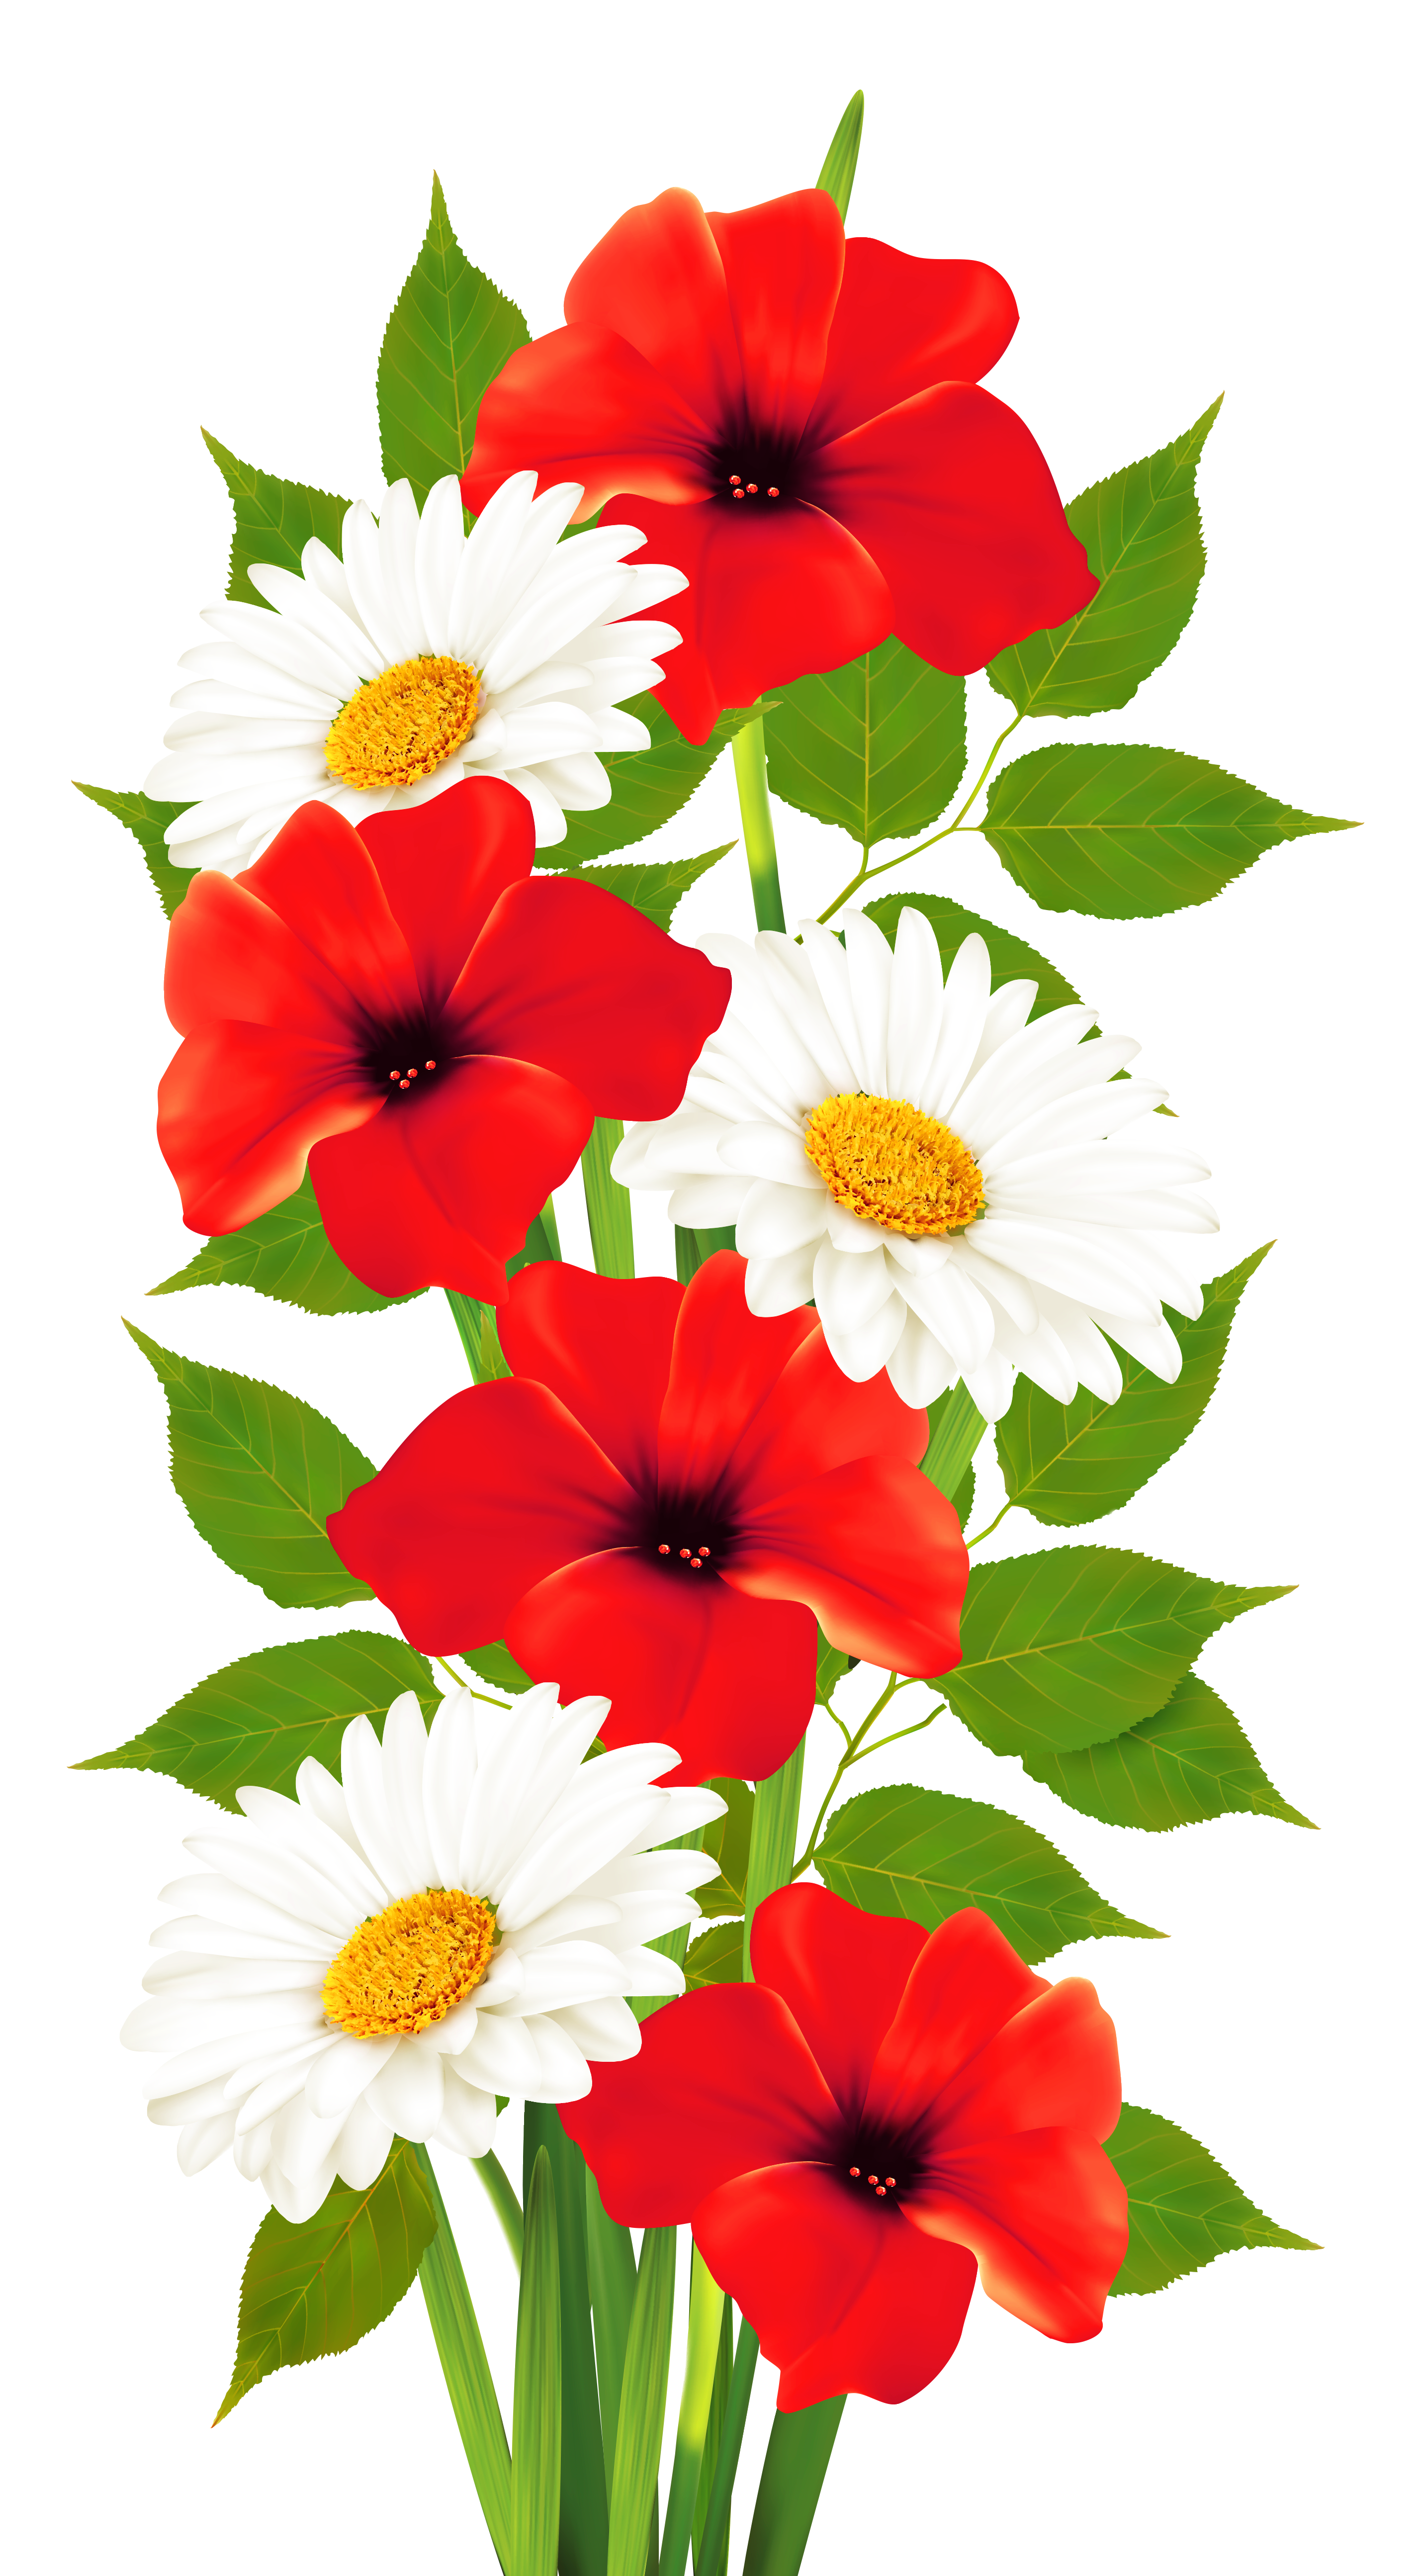 Poppy clipart daisy. Poppies and daisies transparent